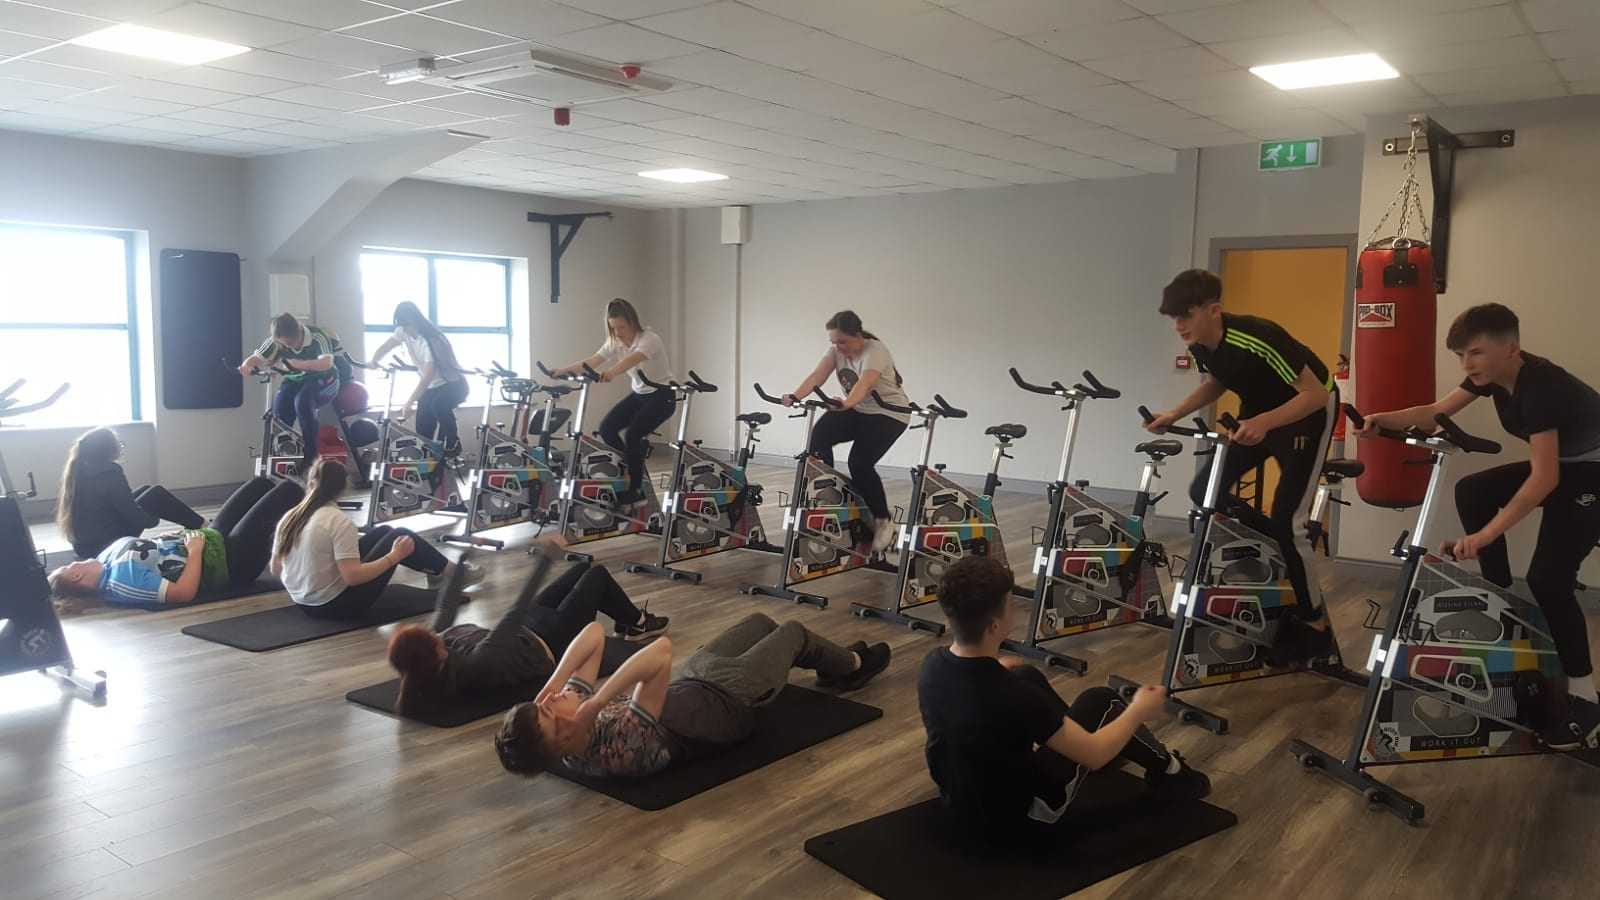 Students enjoying a gym session in the arena as part of Active Week